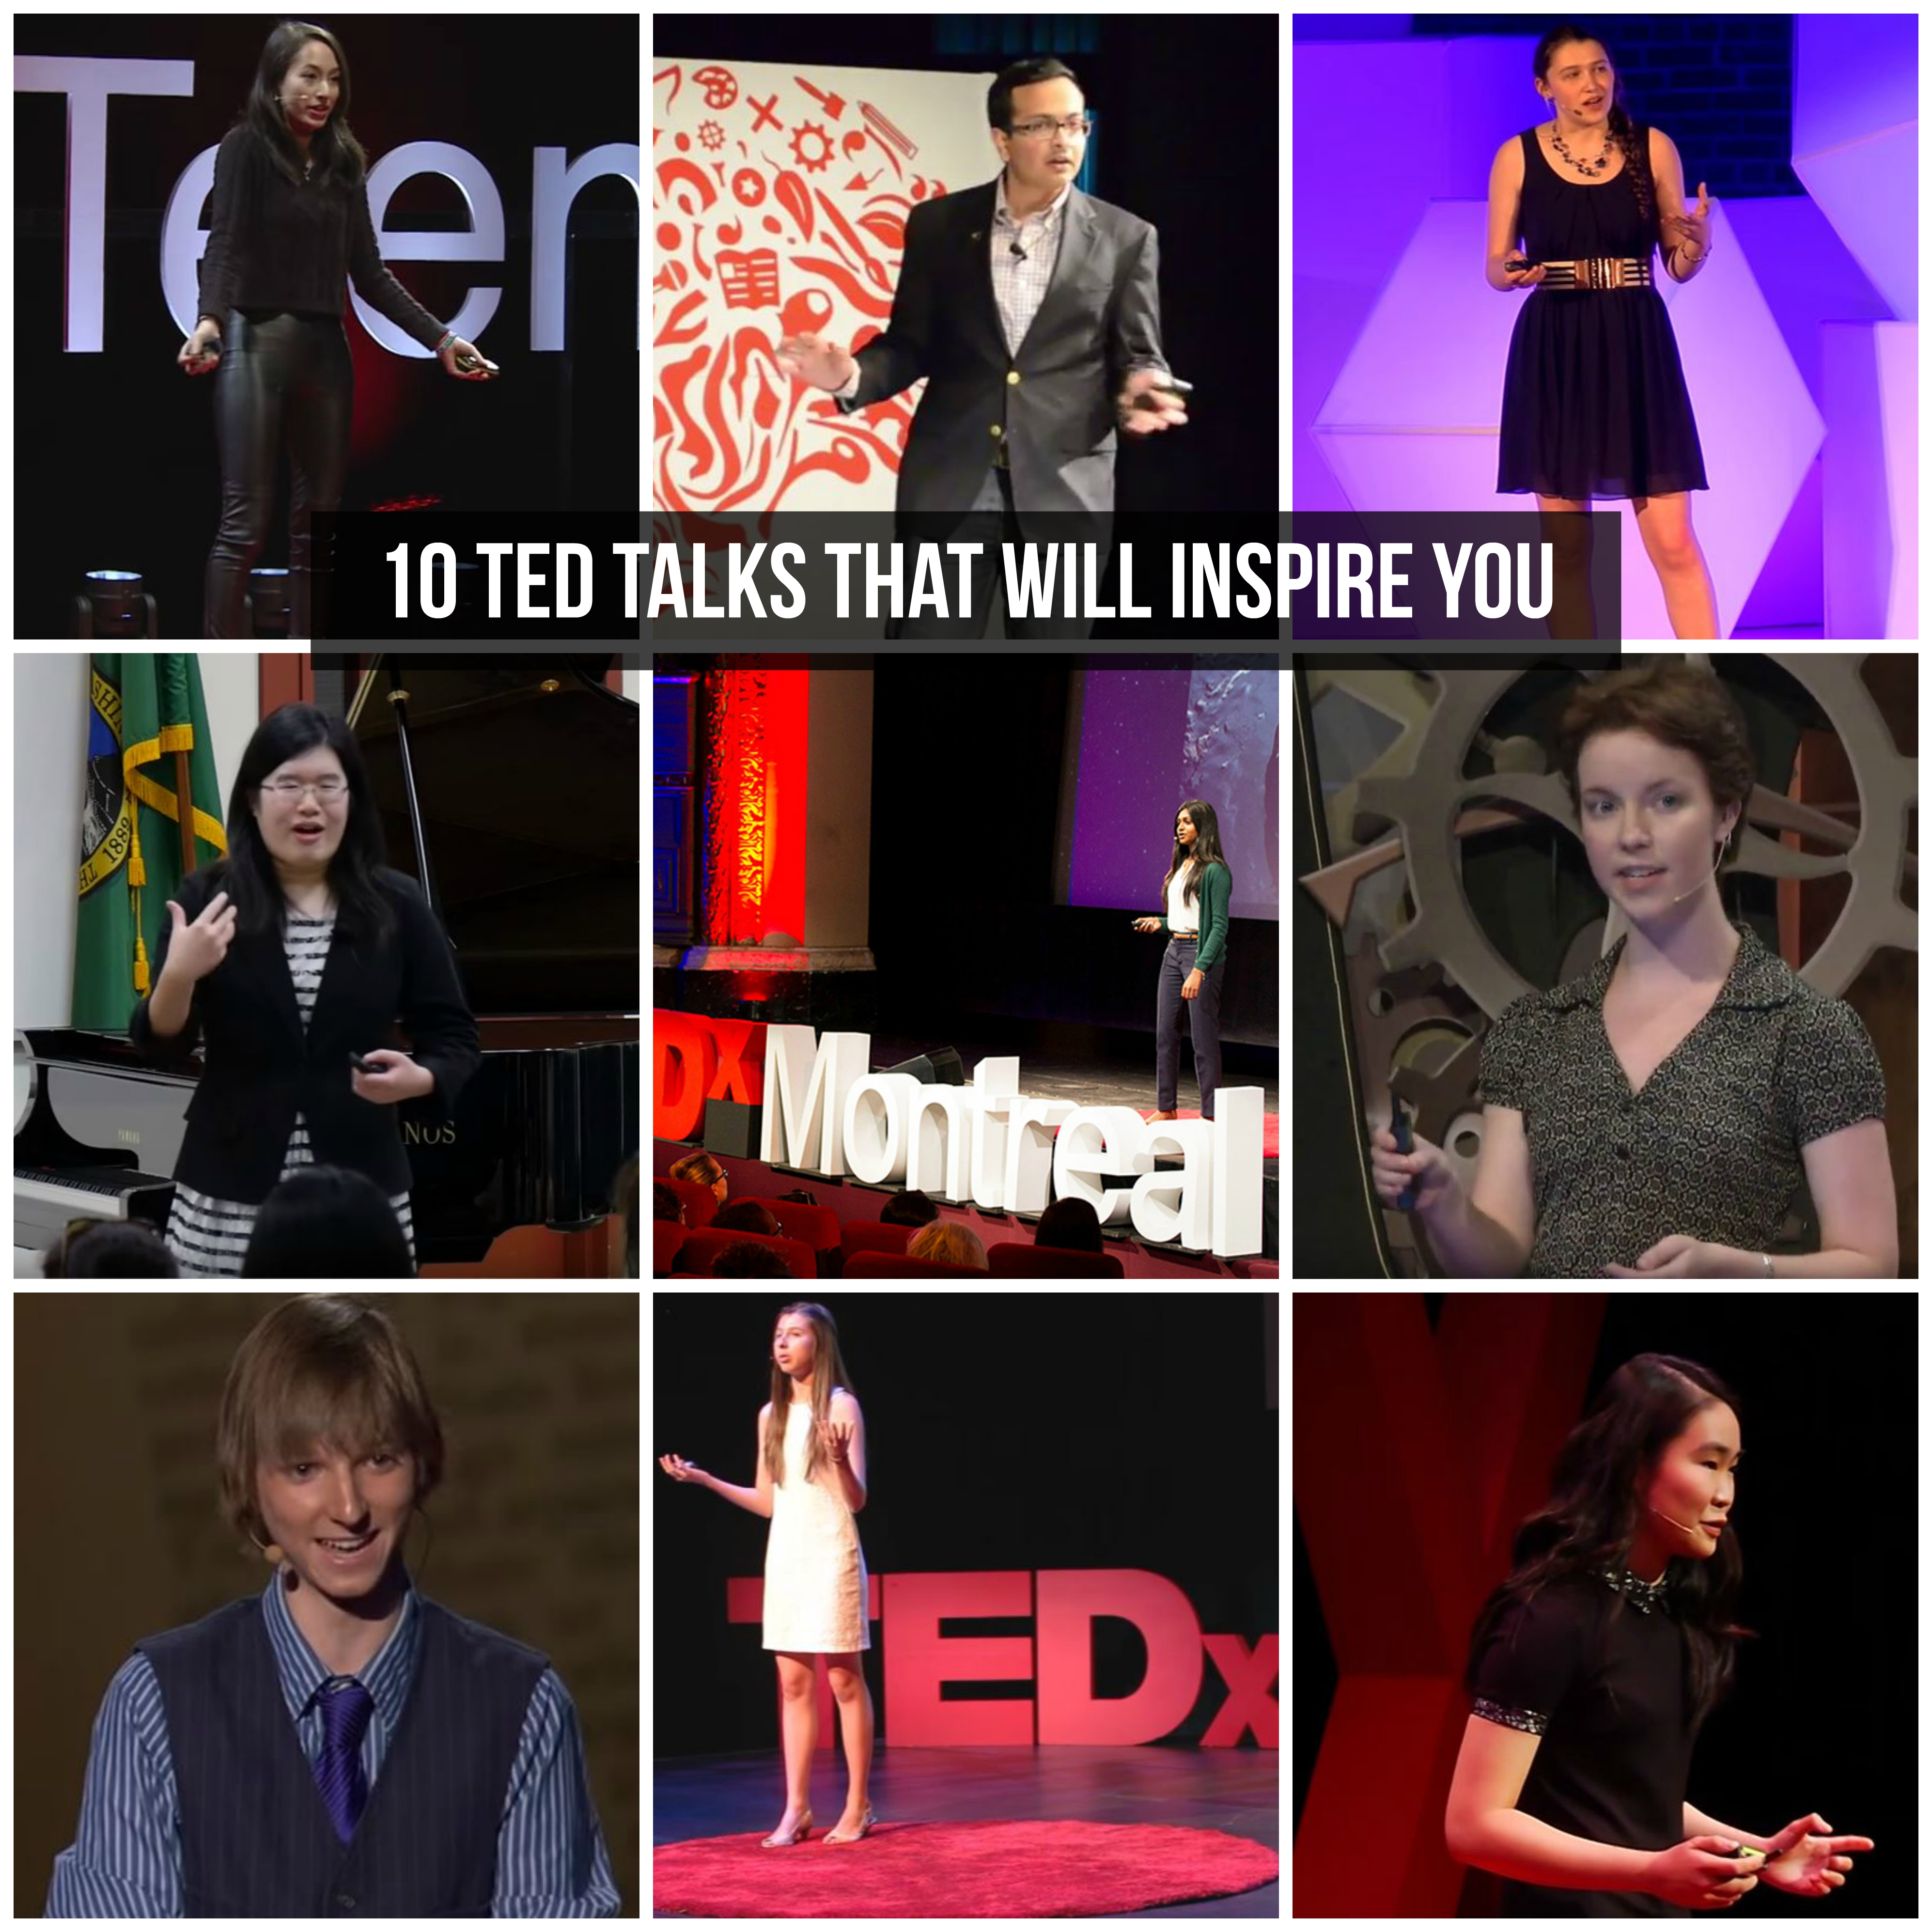 Best Ted Talks 2020.10 Ted Talks That Will Inspire You Society For Science